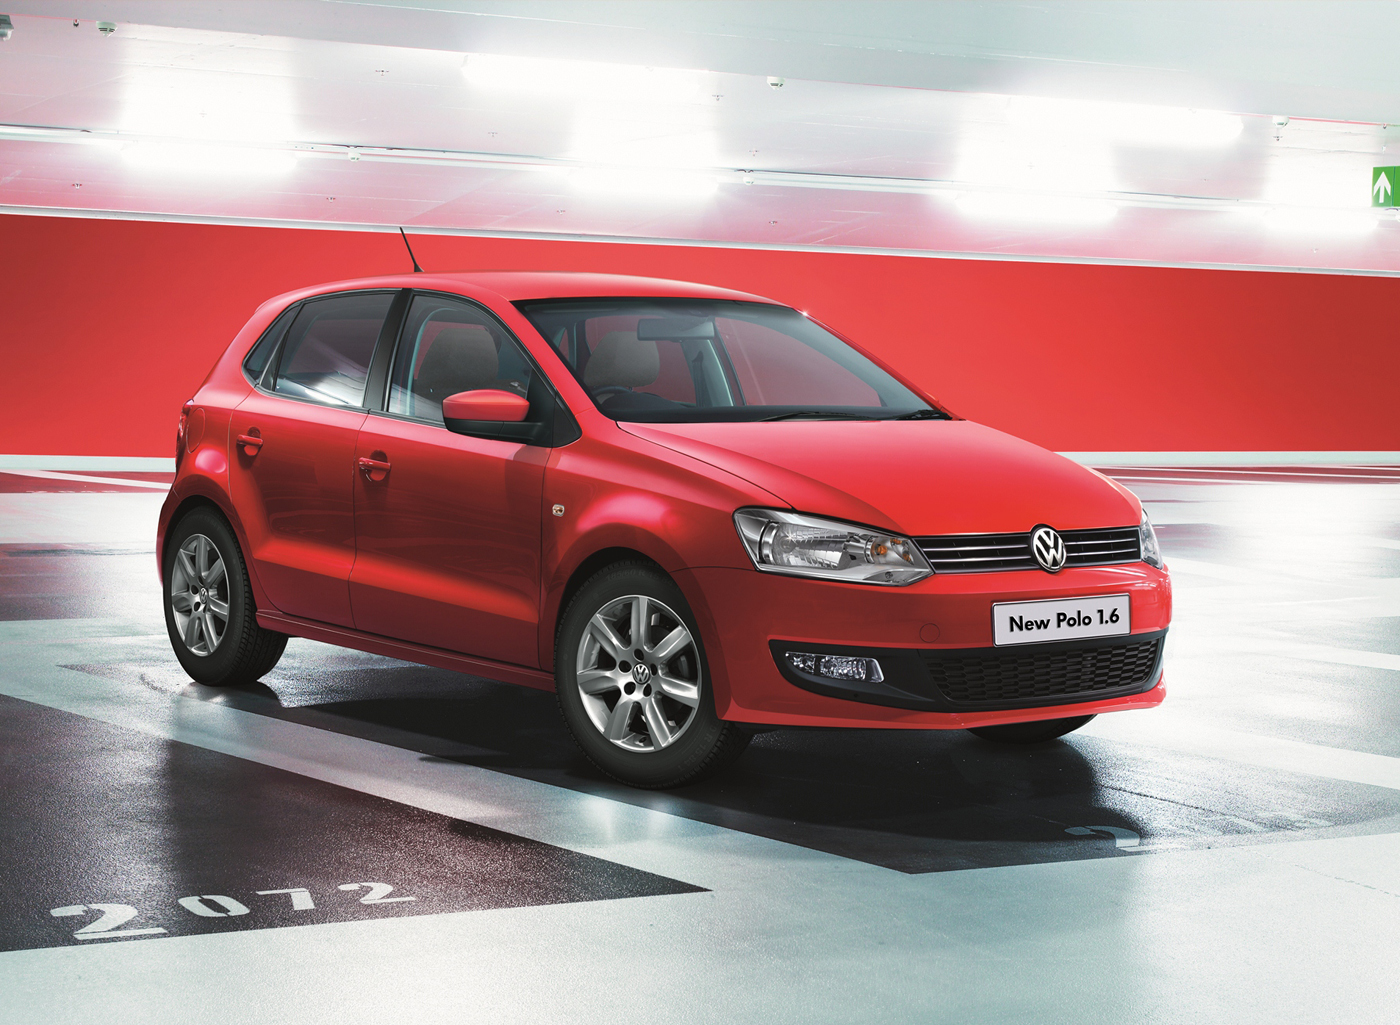 Vw Polo 1 6 Ckd Hatchback Launched In Malaysia More